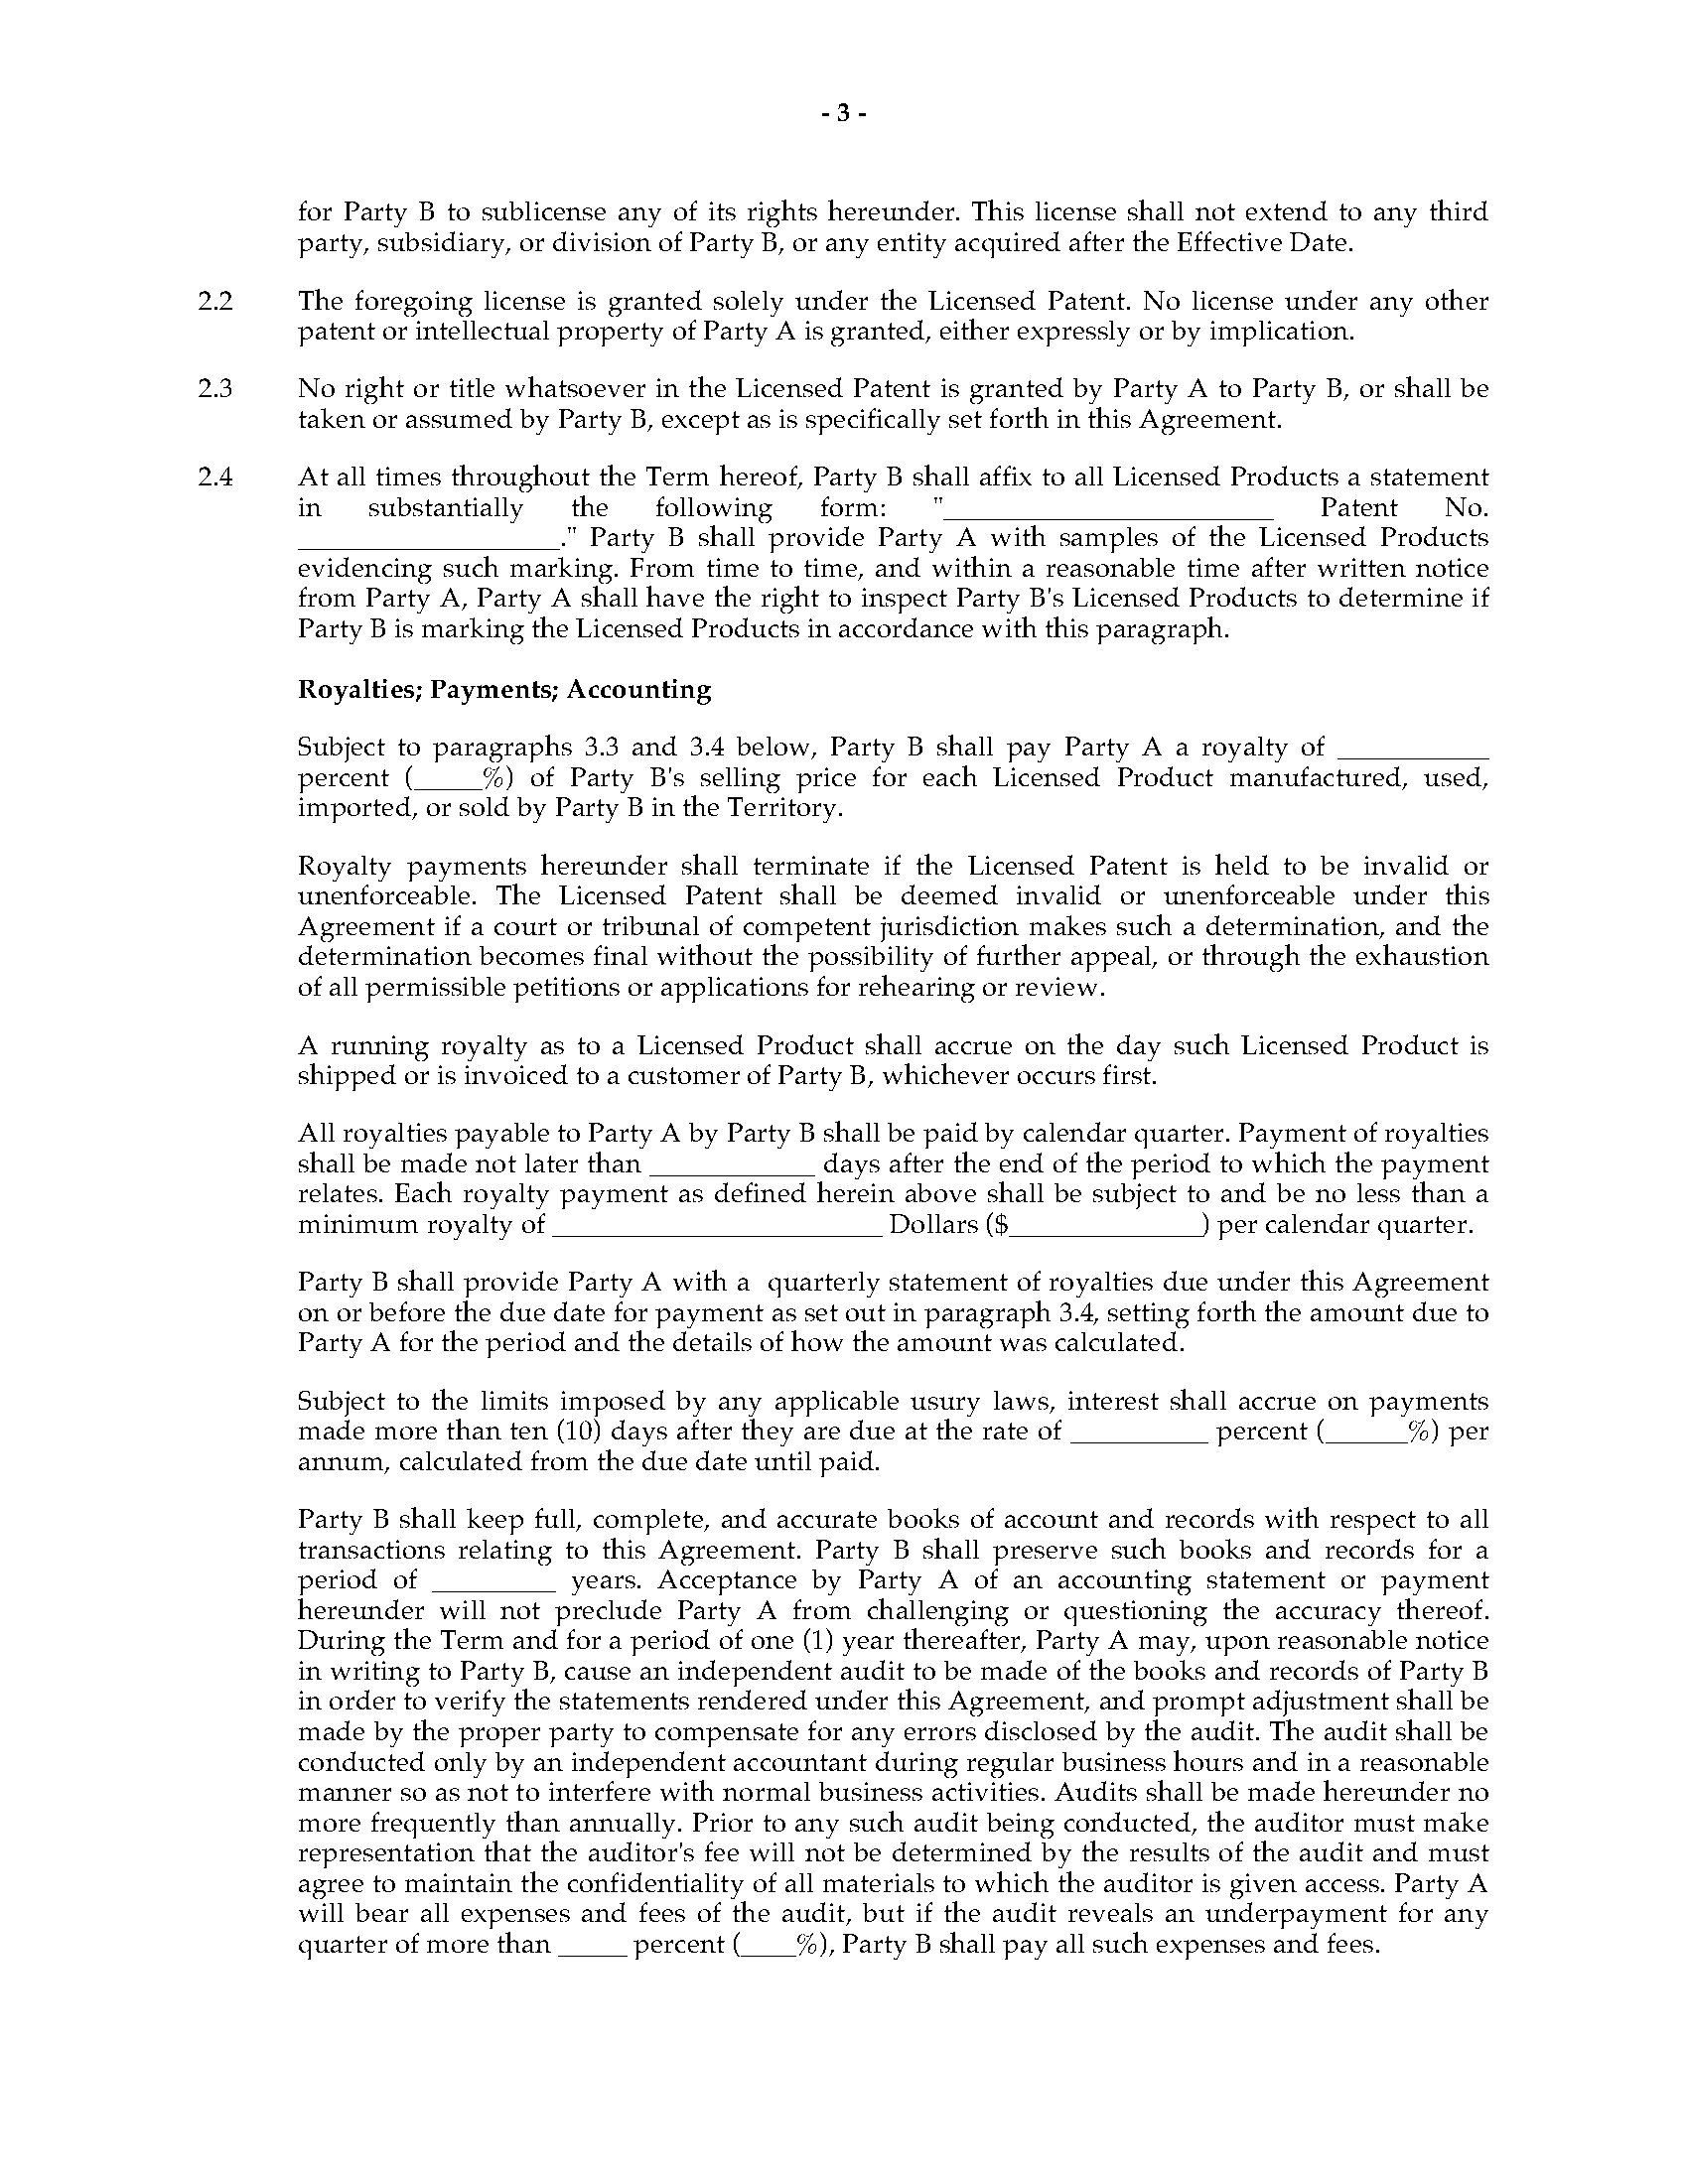 China Patent License Agreement Form Legal Forms And Business